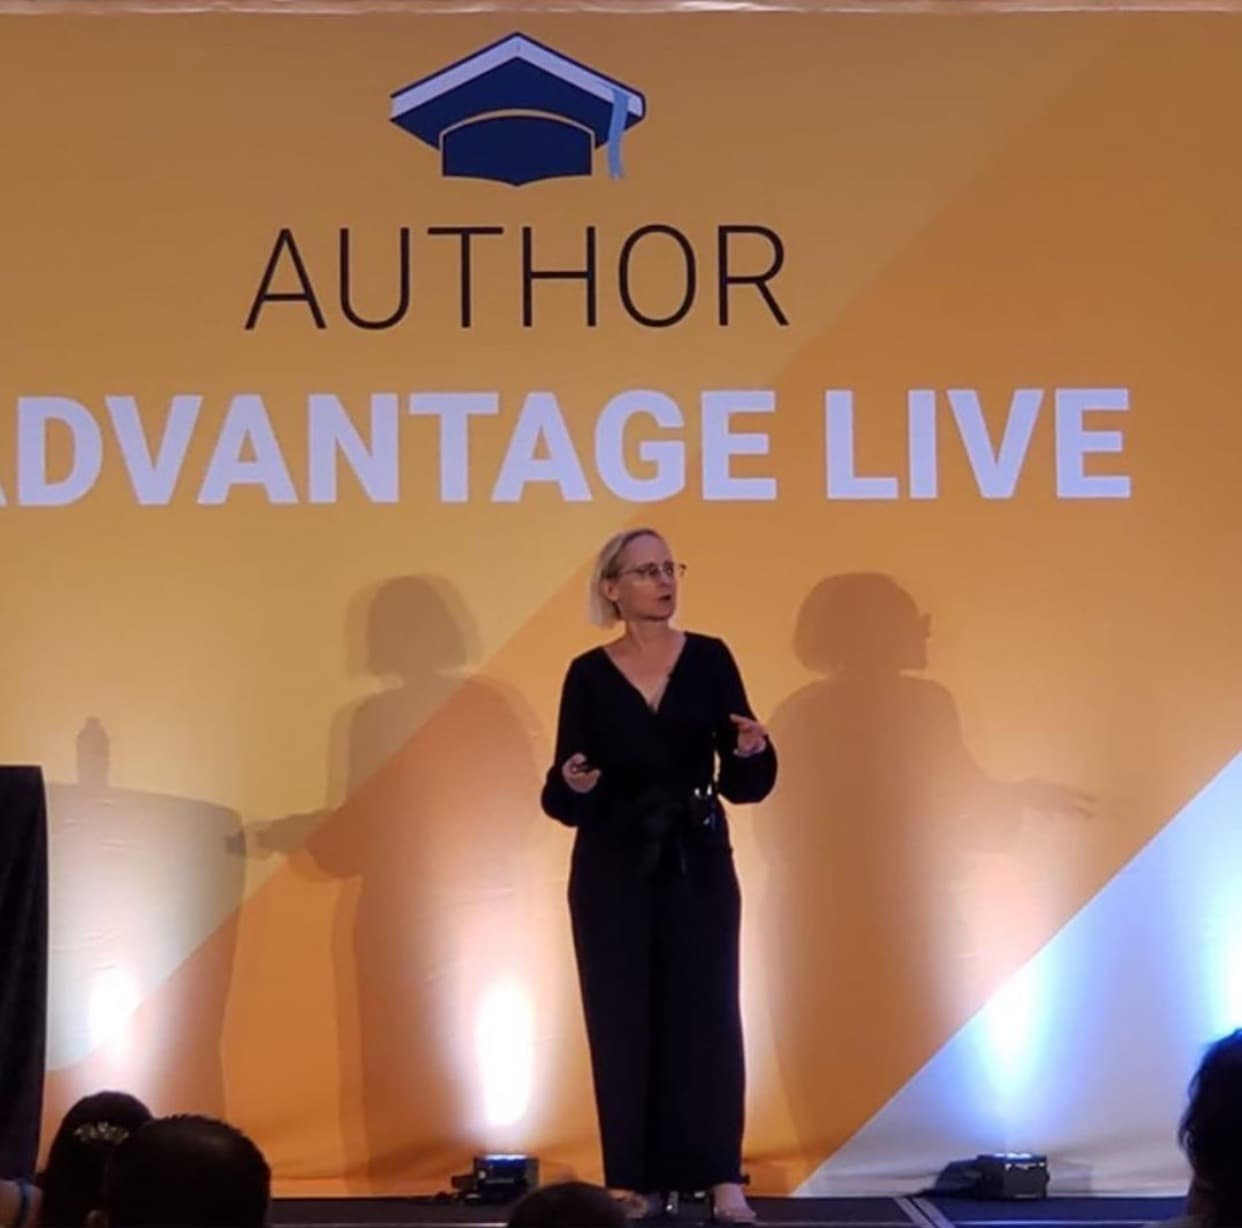 Nancy Hillis- Speaking at Author Advantage LIVE about The Hero's Journey in Art and Life.